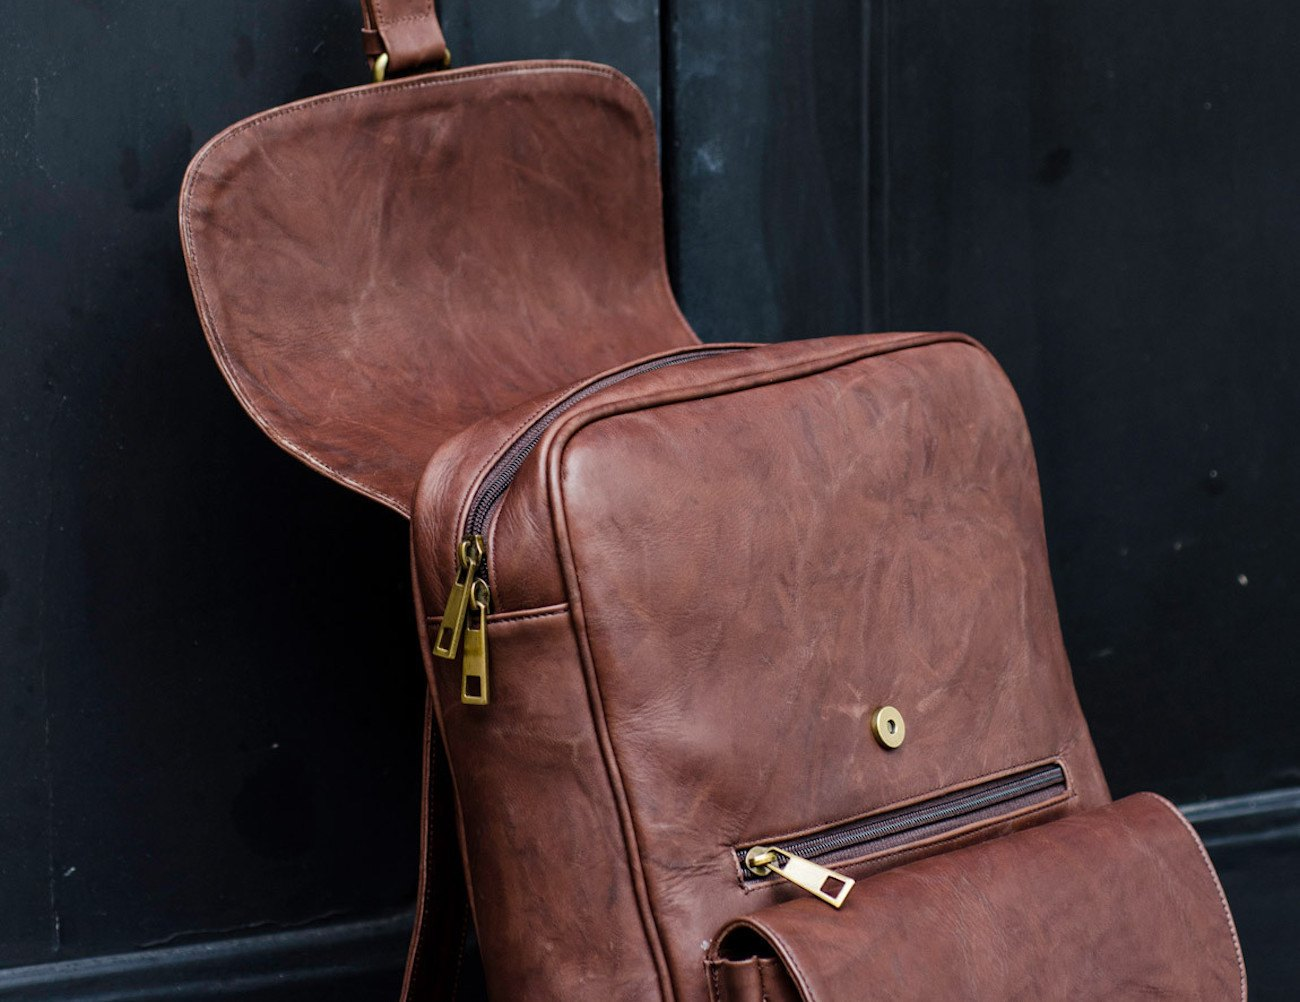 Rustic Brown Leather Laptop Backpack » Gadget Flow